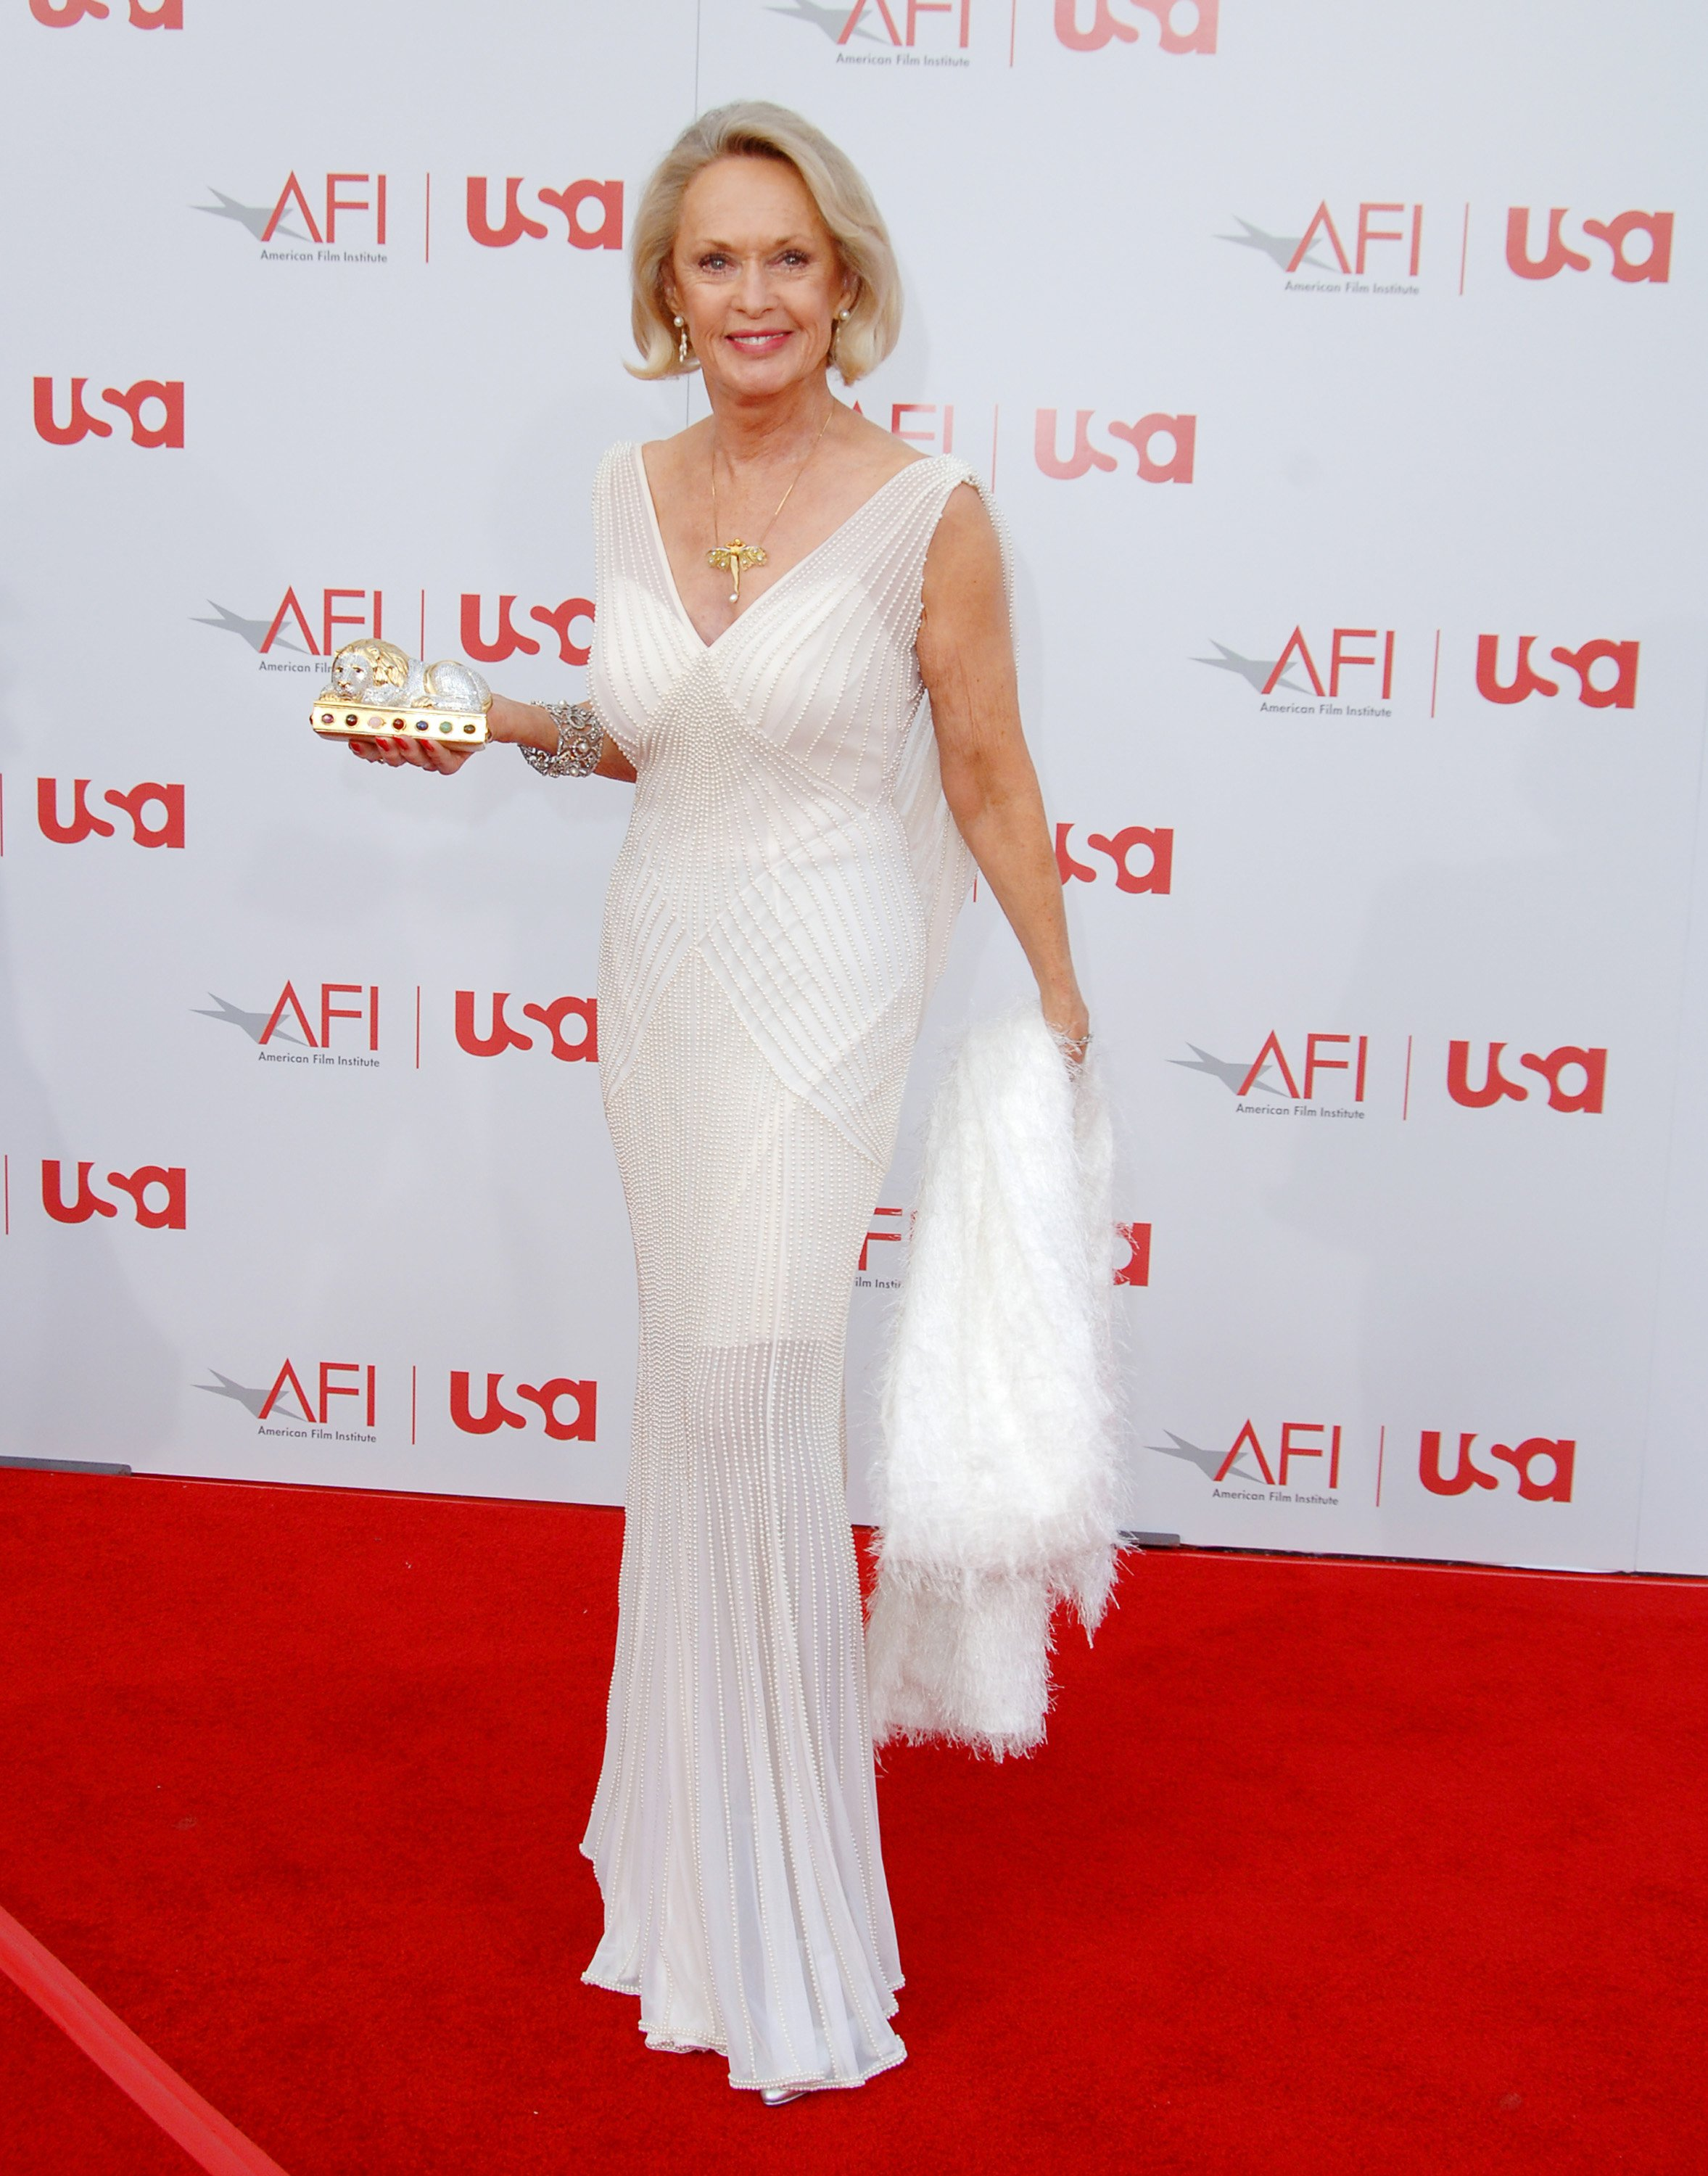 Tippi Hedren during 34th Annual AFI Lifetime Achievement Award: A Tribute to Sean Connery - Arrivals at Kodak Theatre in Hollywood, California, United States. | Source: Getty Images